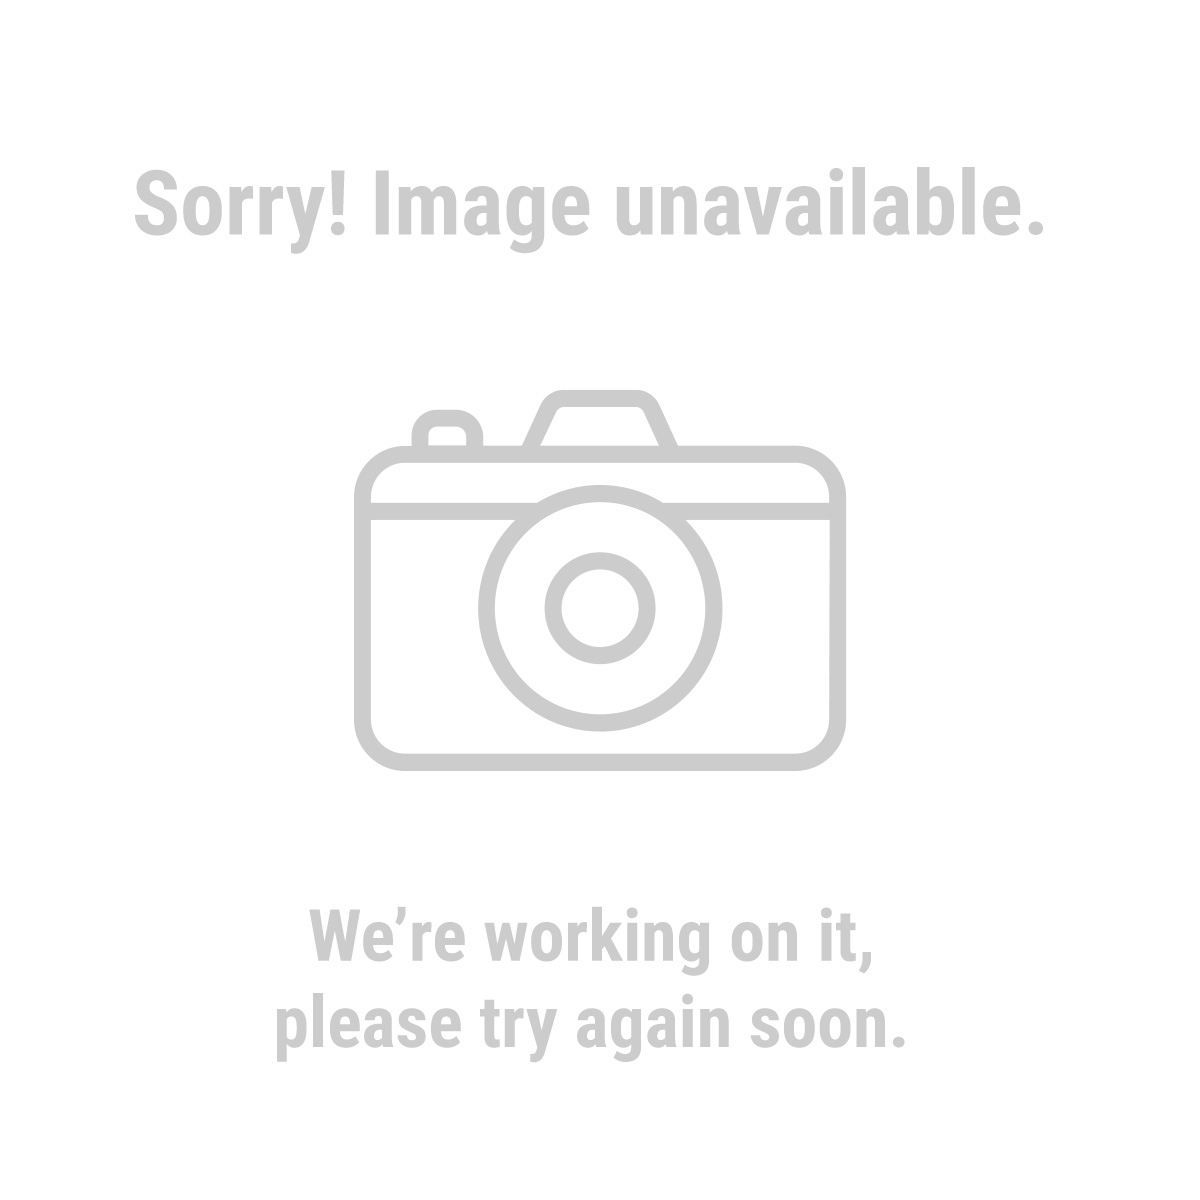 HFT® 69117 9 ft. 4 in. x 11 ft. 4 in. Blue All Purpose/Weather Resistant Tarp